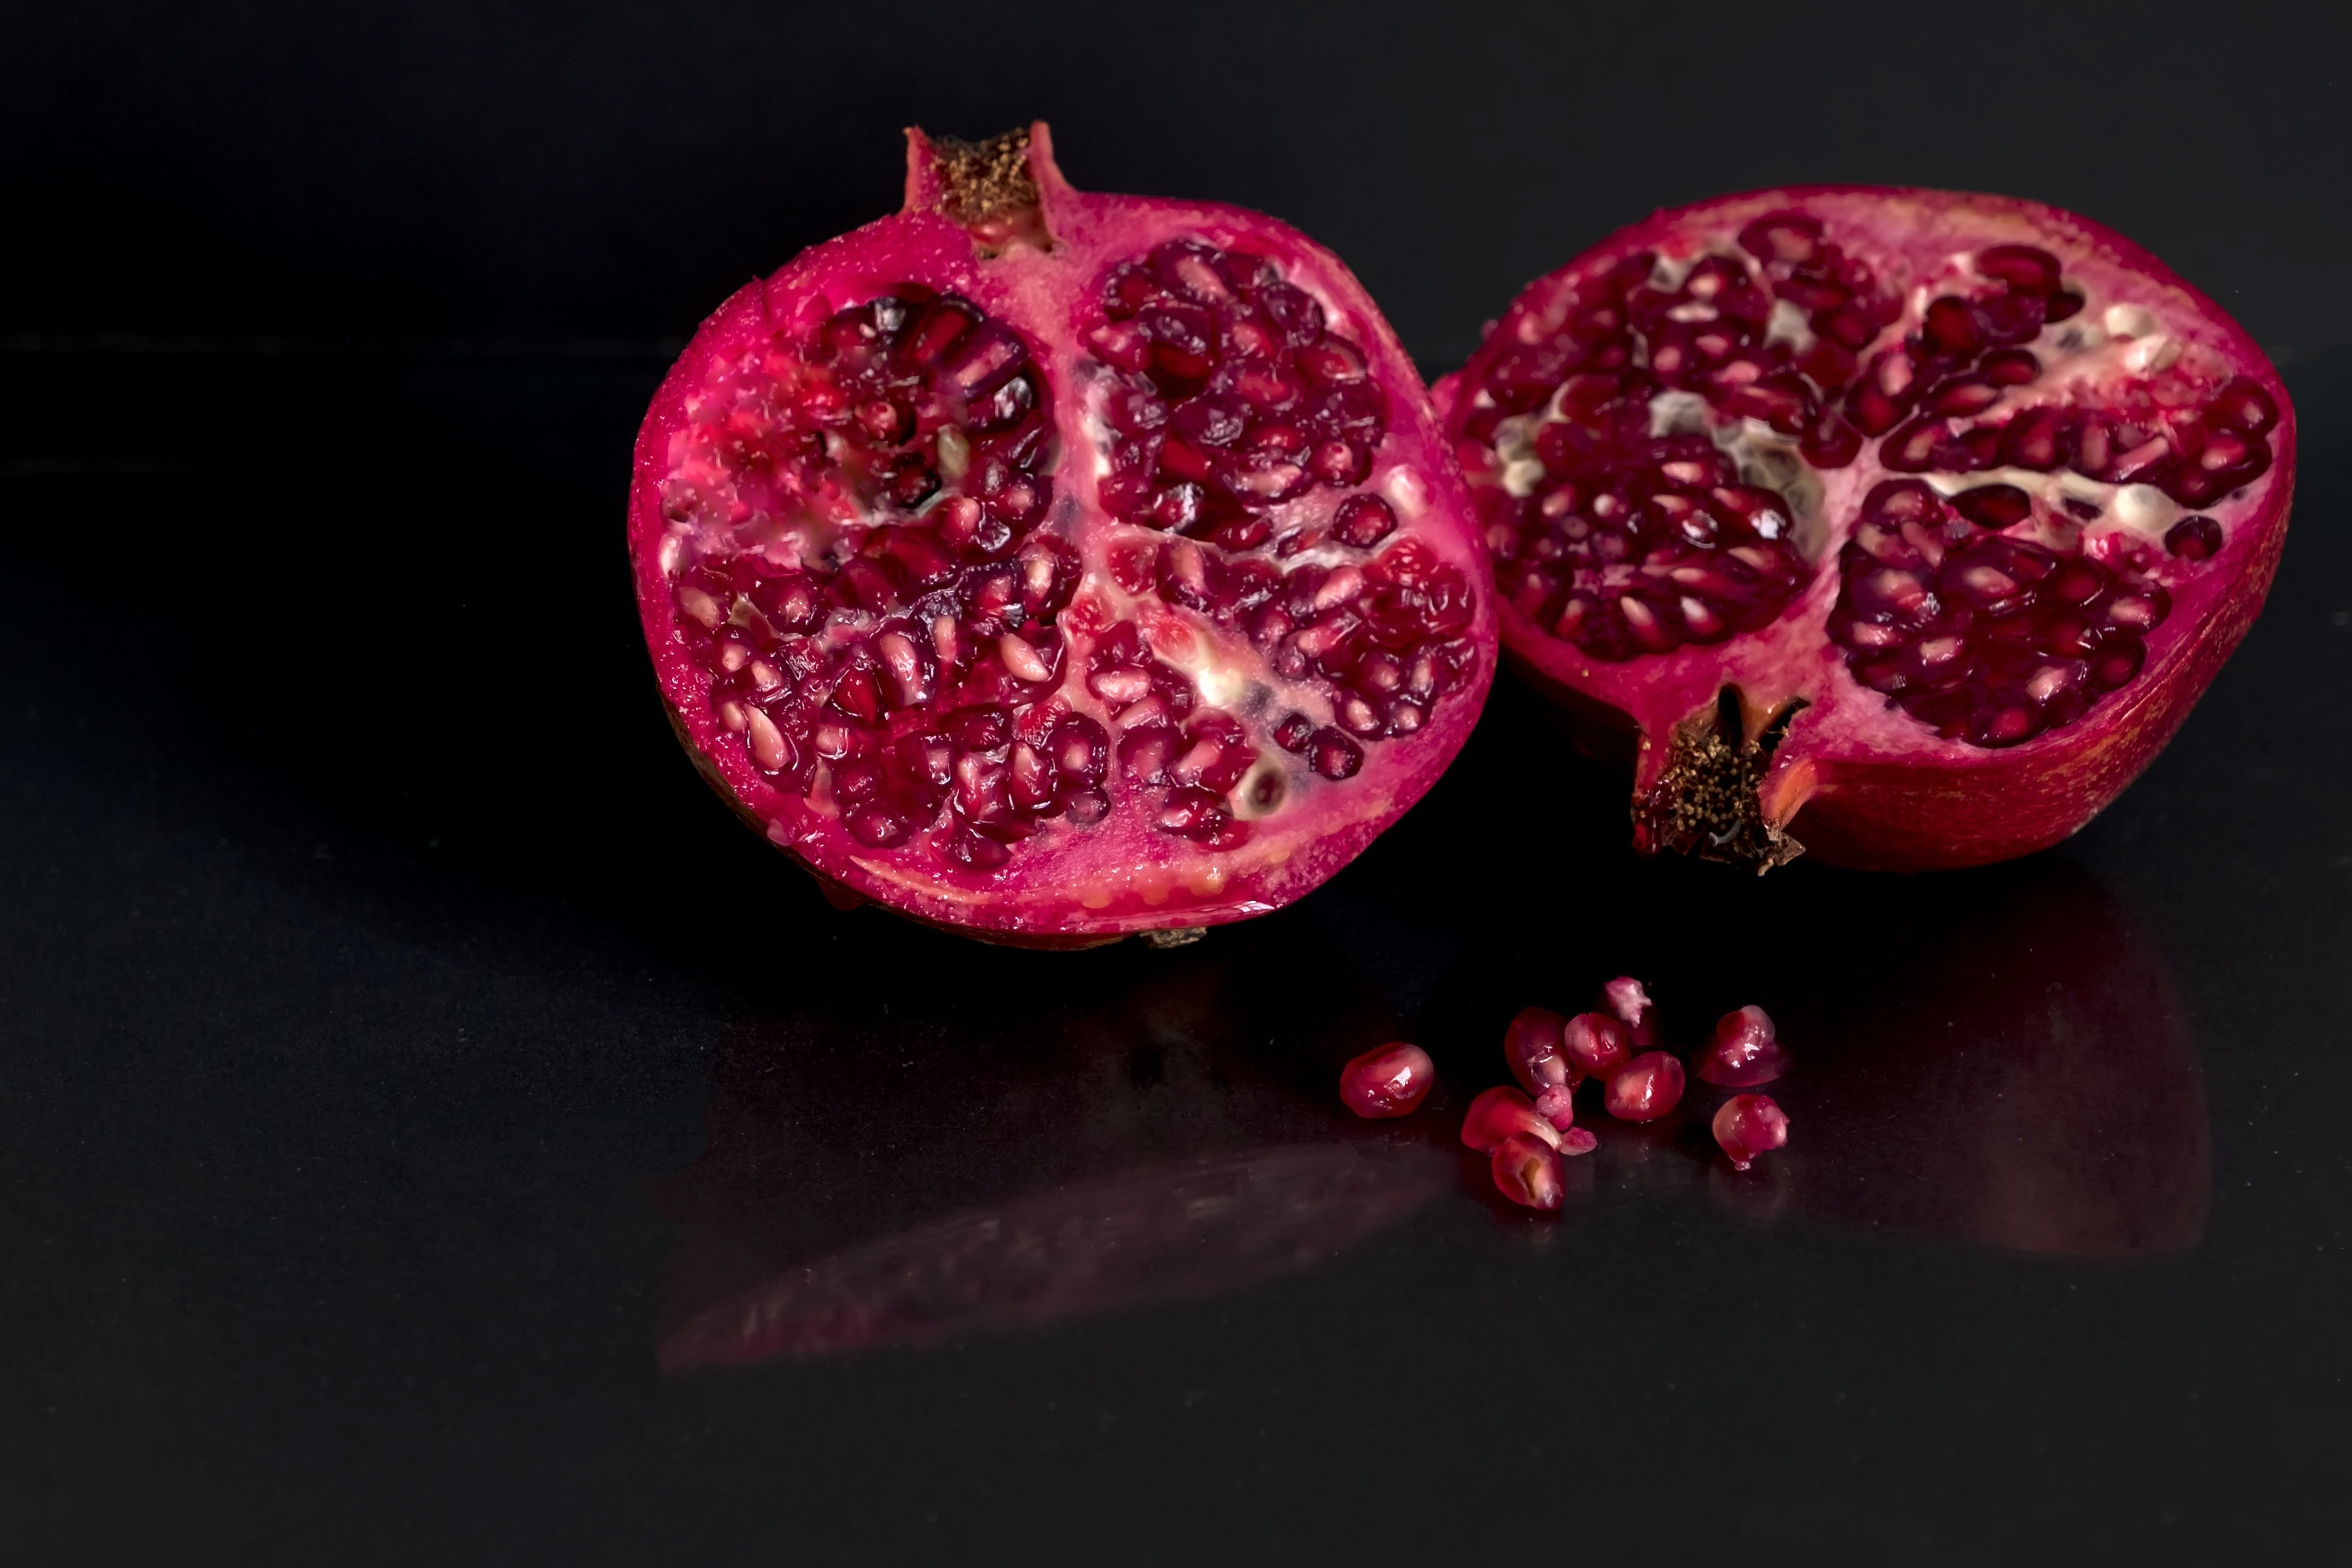 focus photo of sliced red fruit